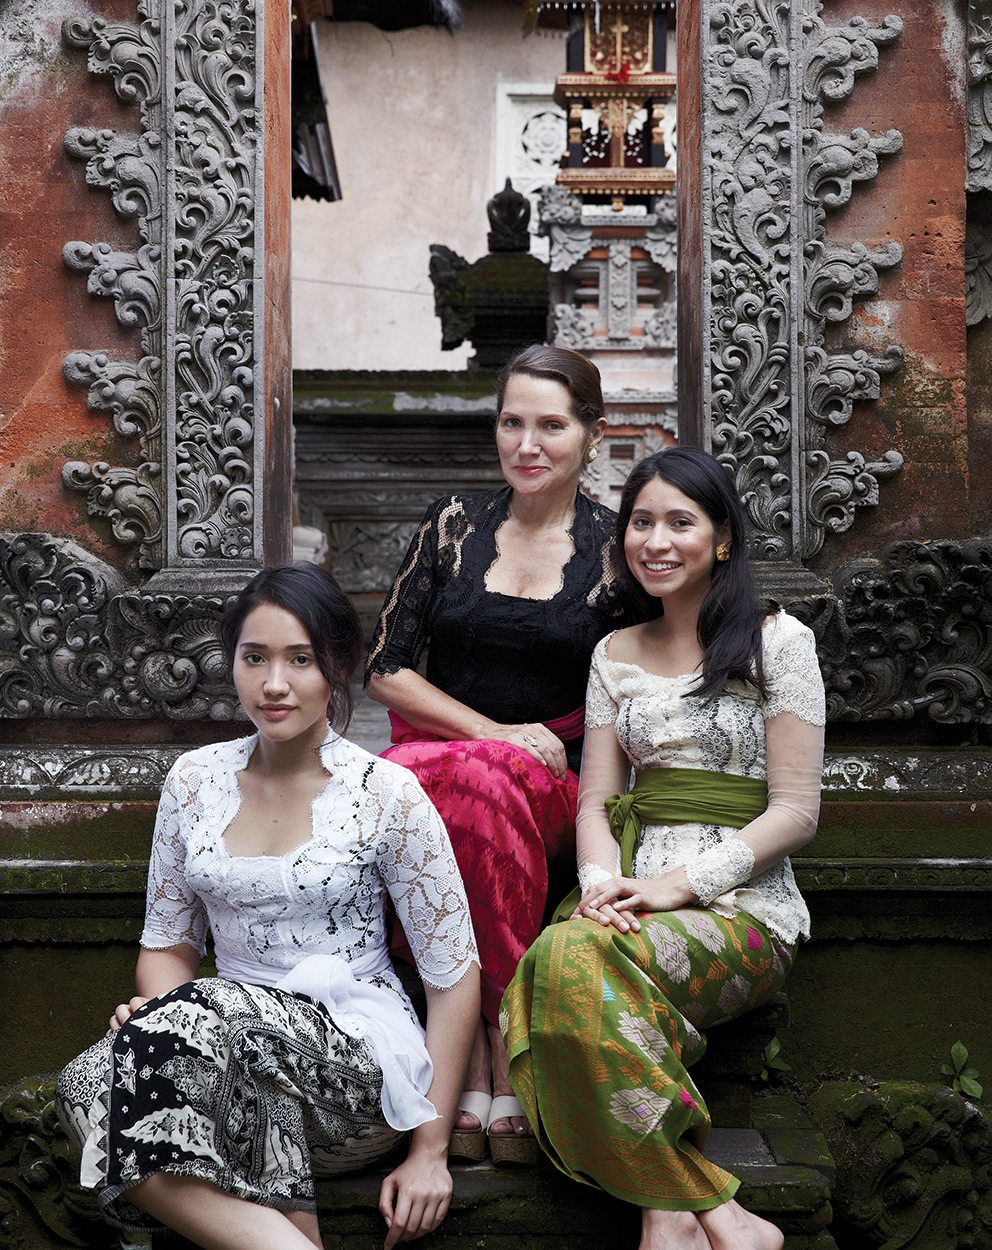 Janet DeNeefe at HoneyMoon Guesthouse 1 with two of her four children, Dewi and Laksmi